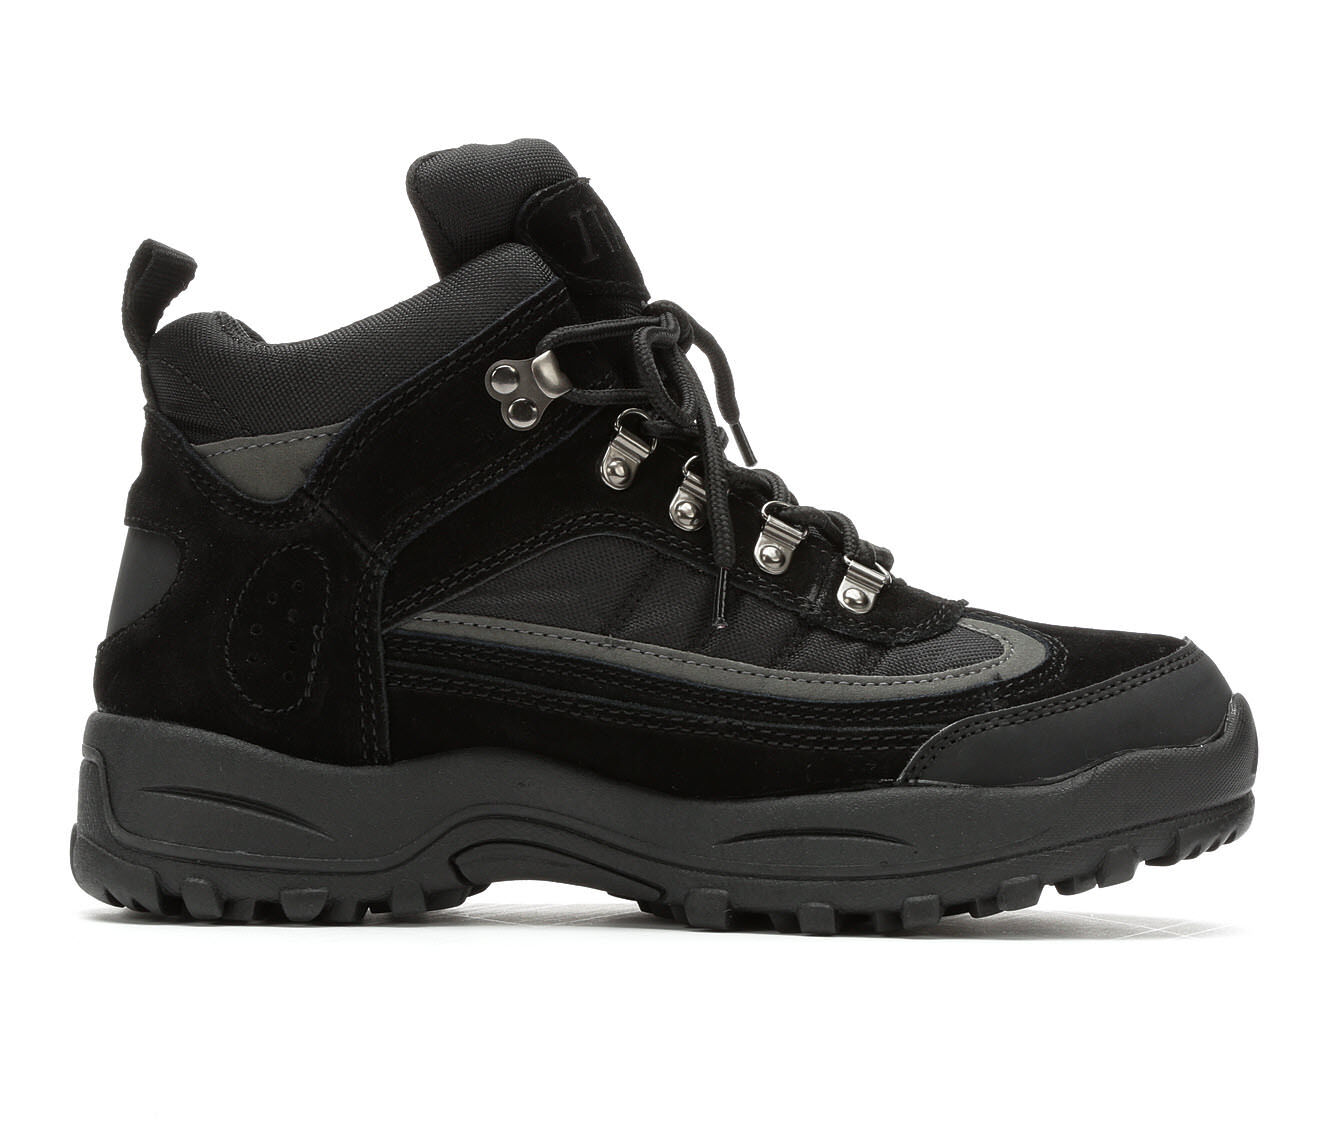 Sophisticated Men's Itasca Sonoma Brazil Hiking Boots Black